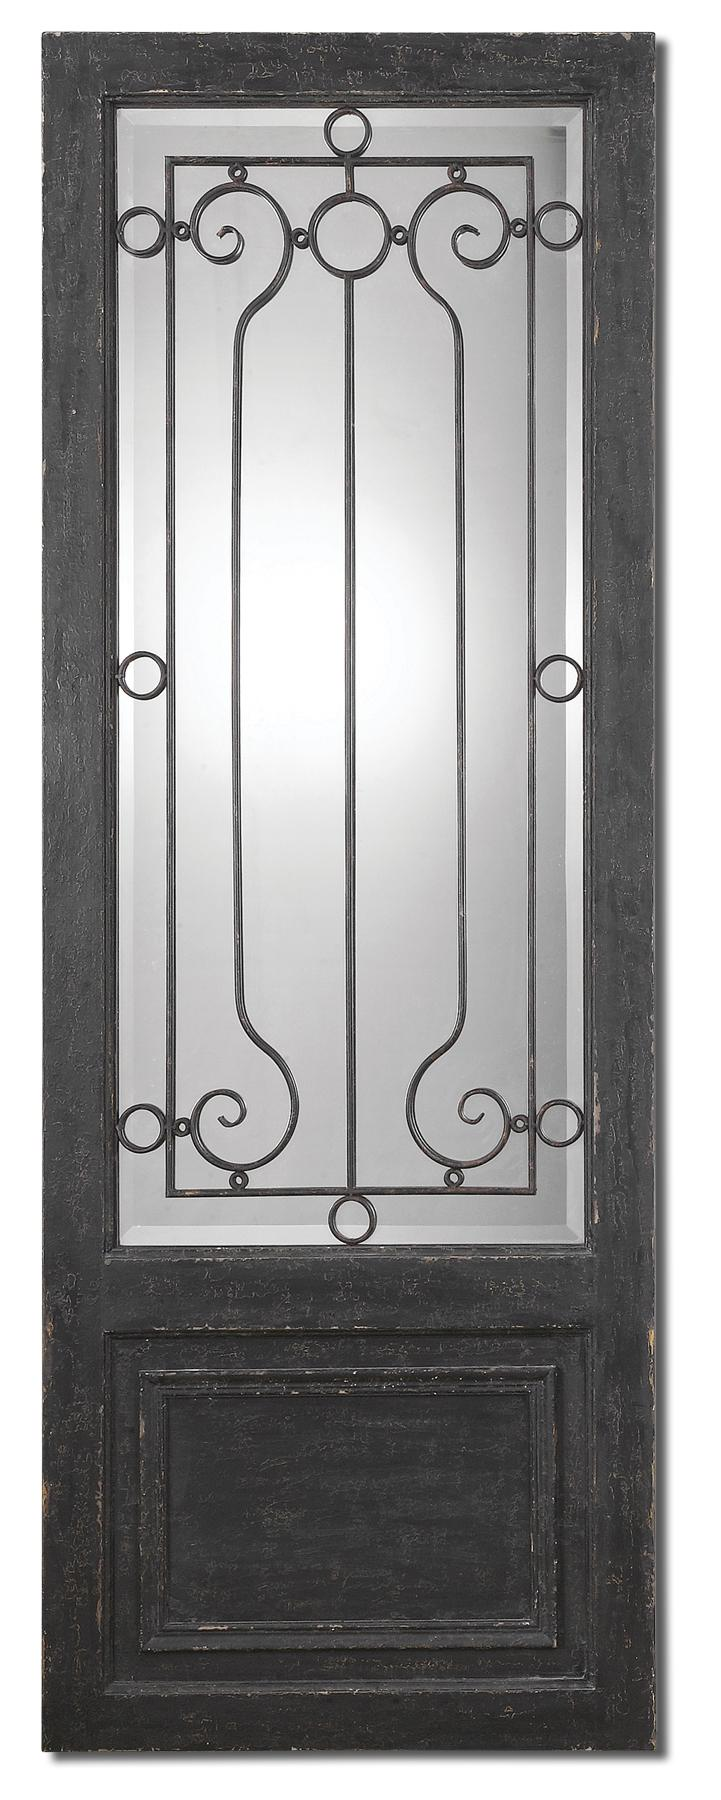 Uttermost Mirrors Teulada - Item Number: 10509